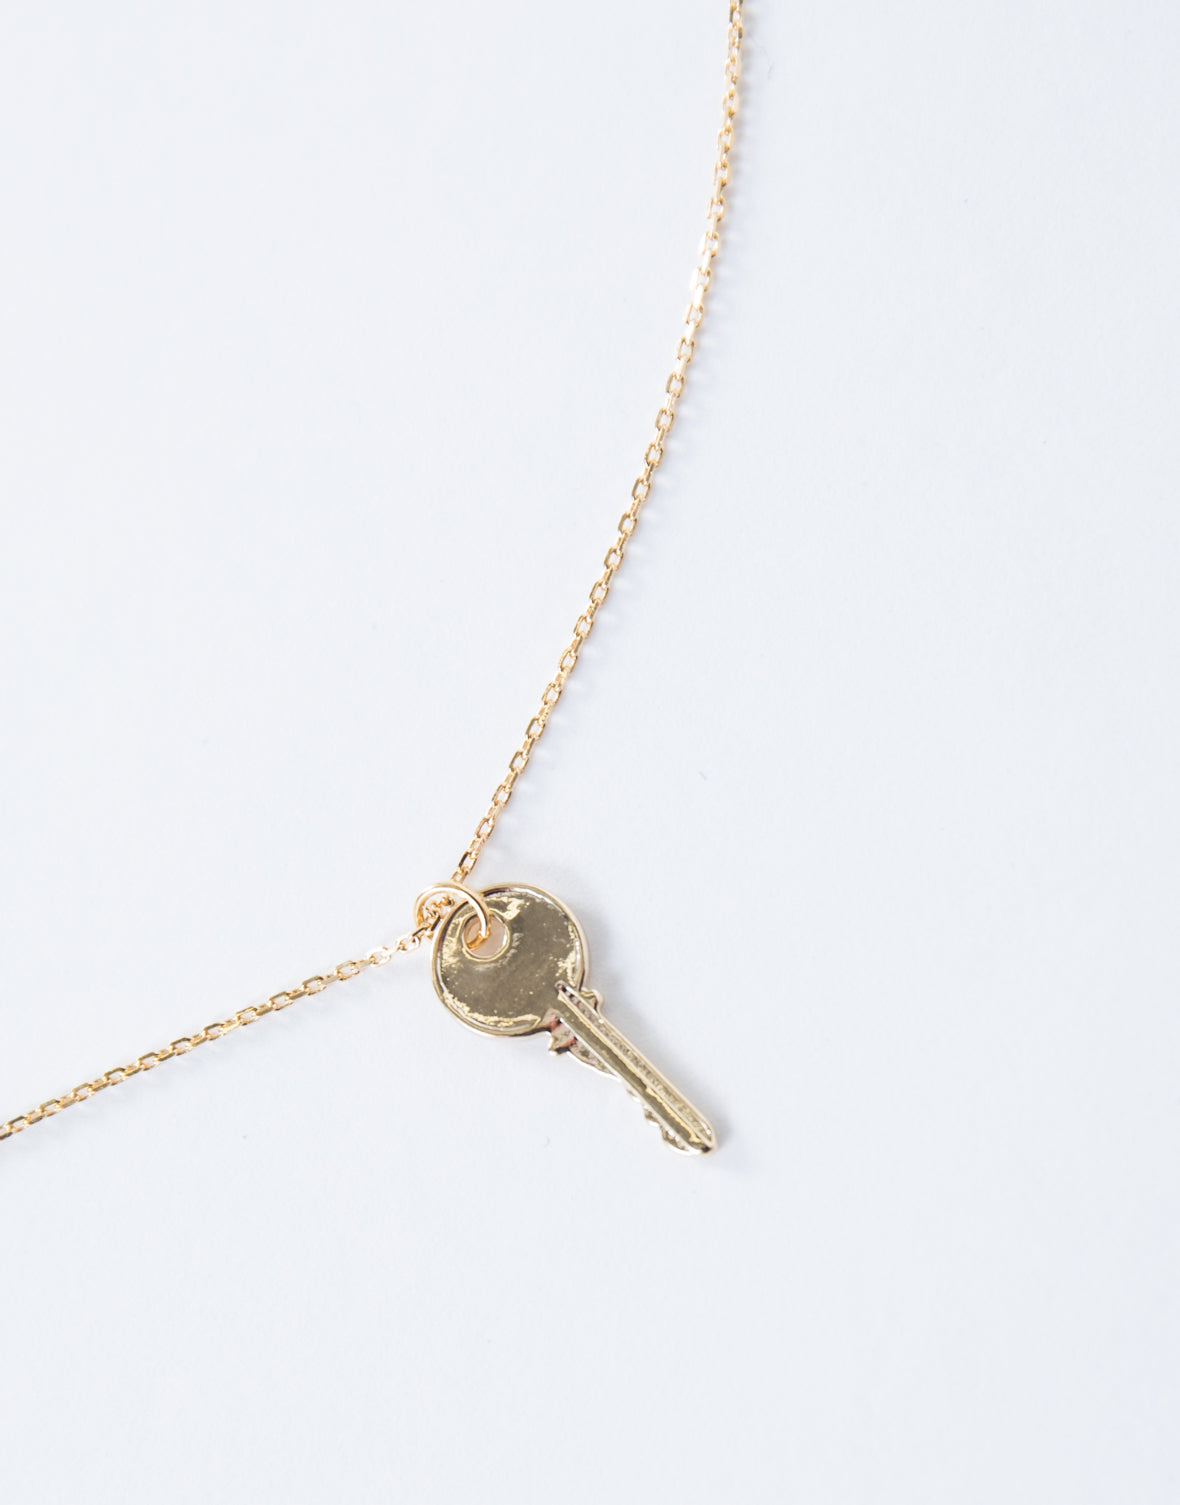 Brave Key Pendant Necklace